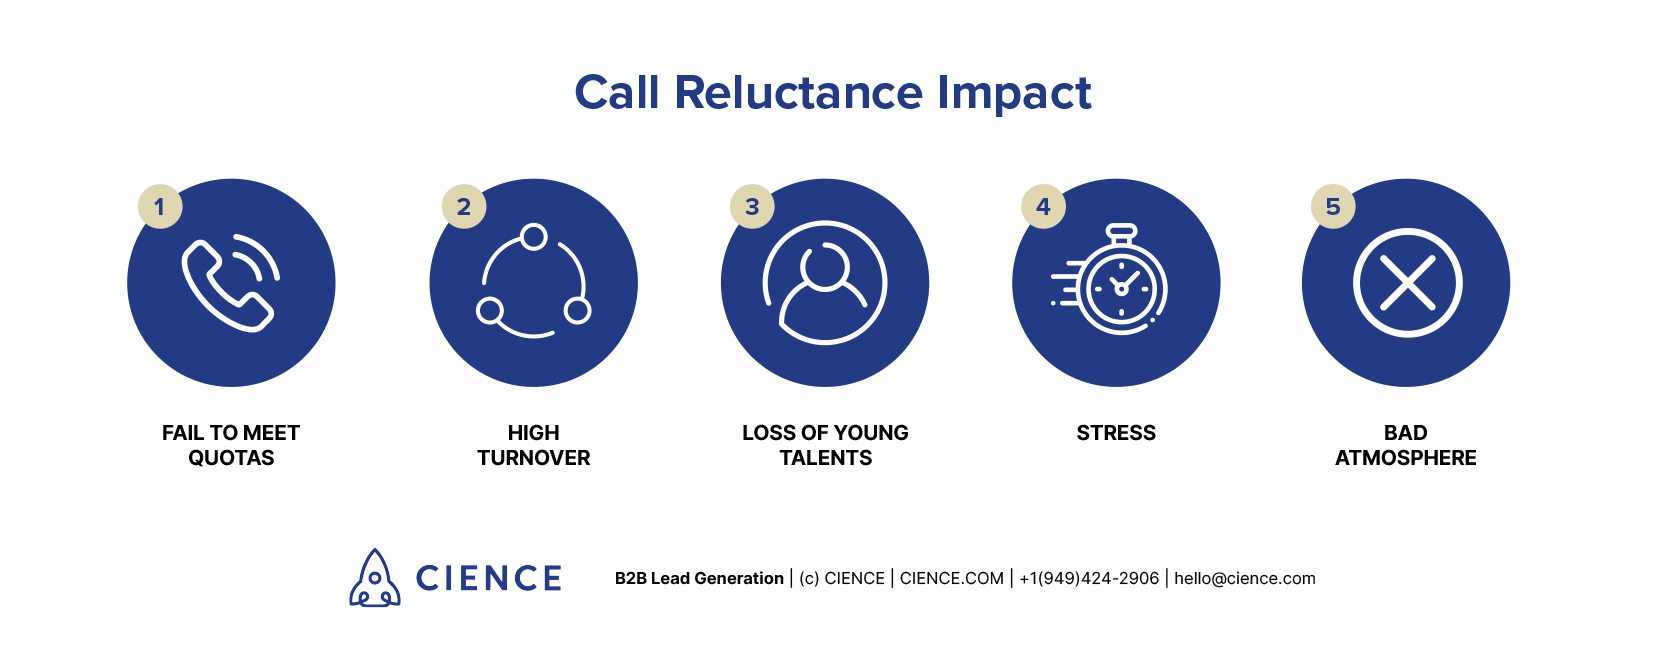 Results and impacts of Call Reluctance